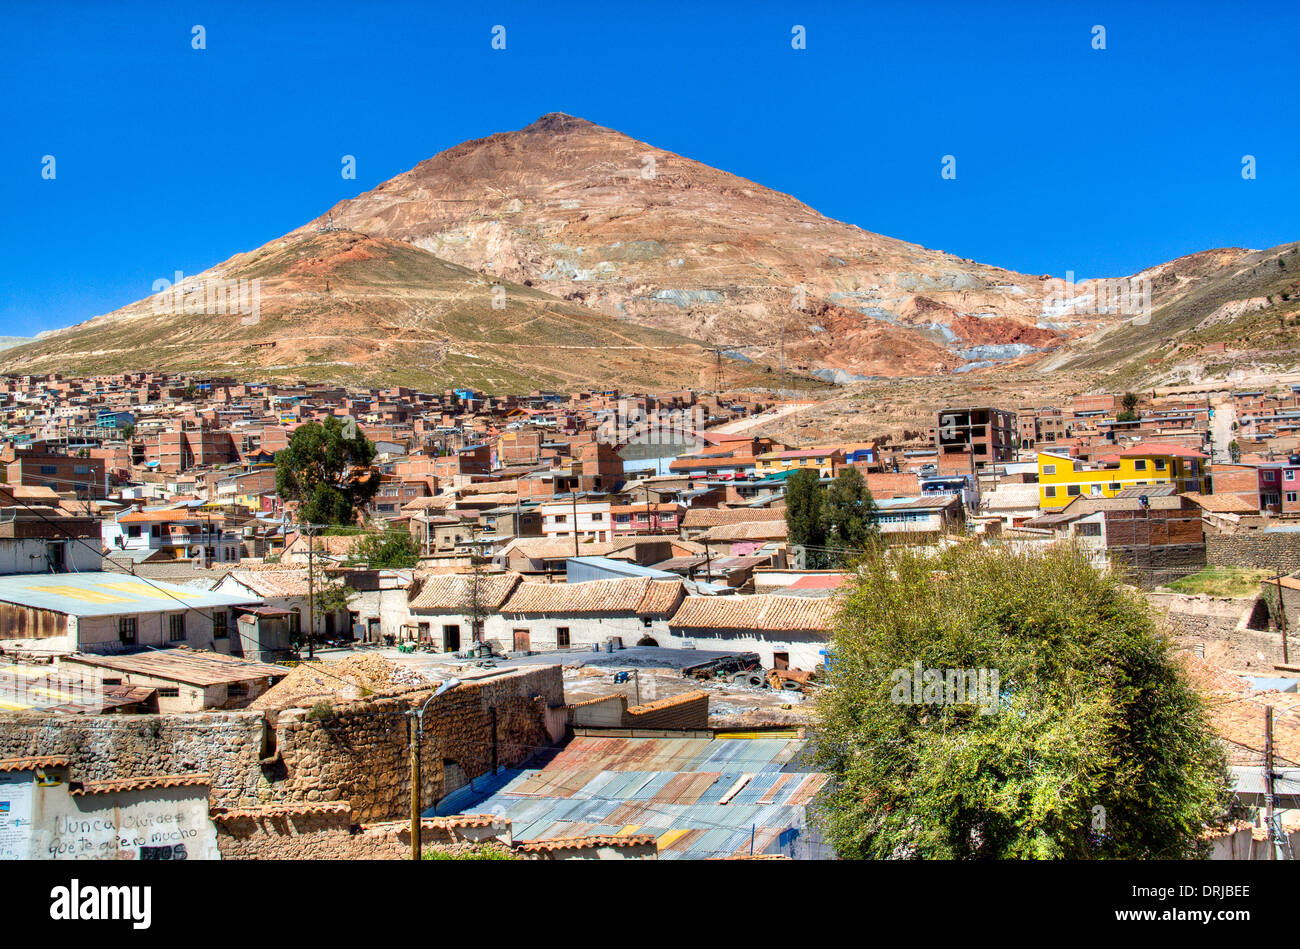 View on the cerro rico in Potosi, Bolivia - Stock Image